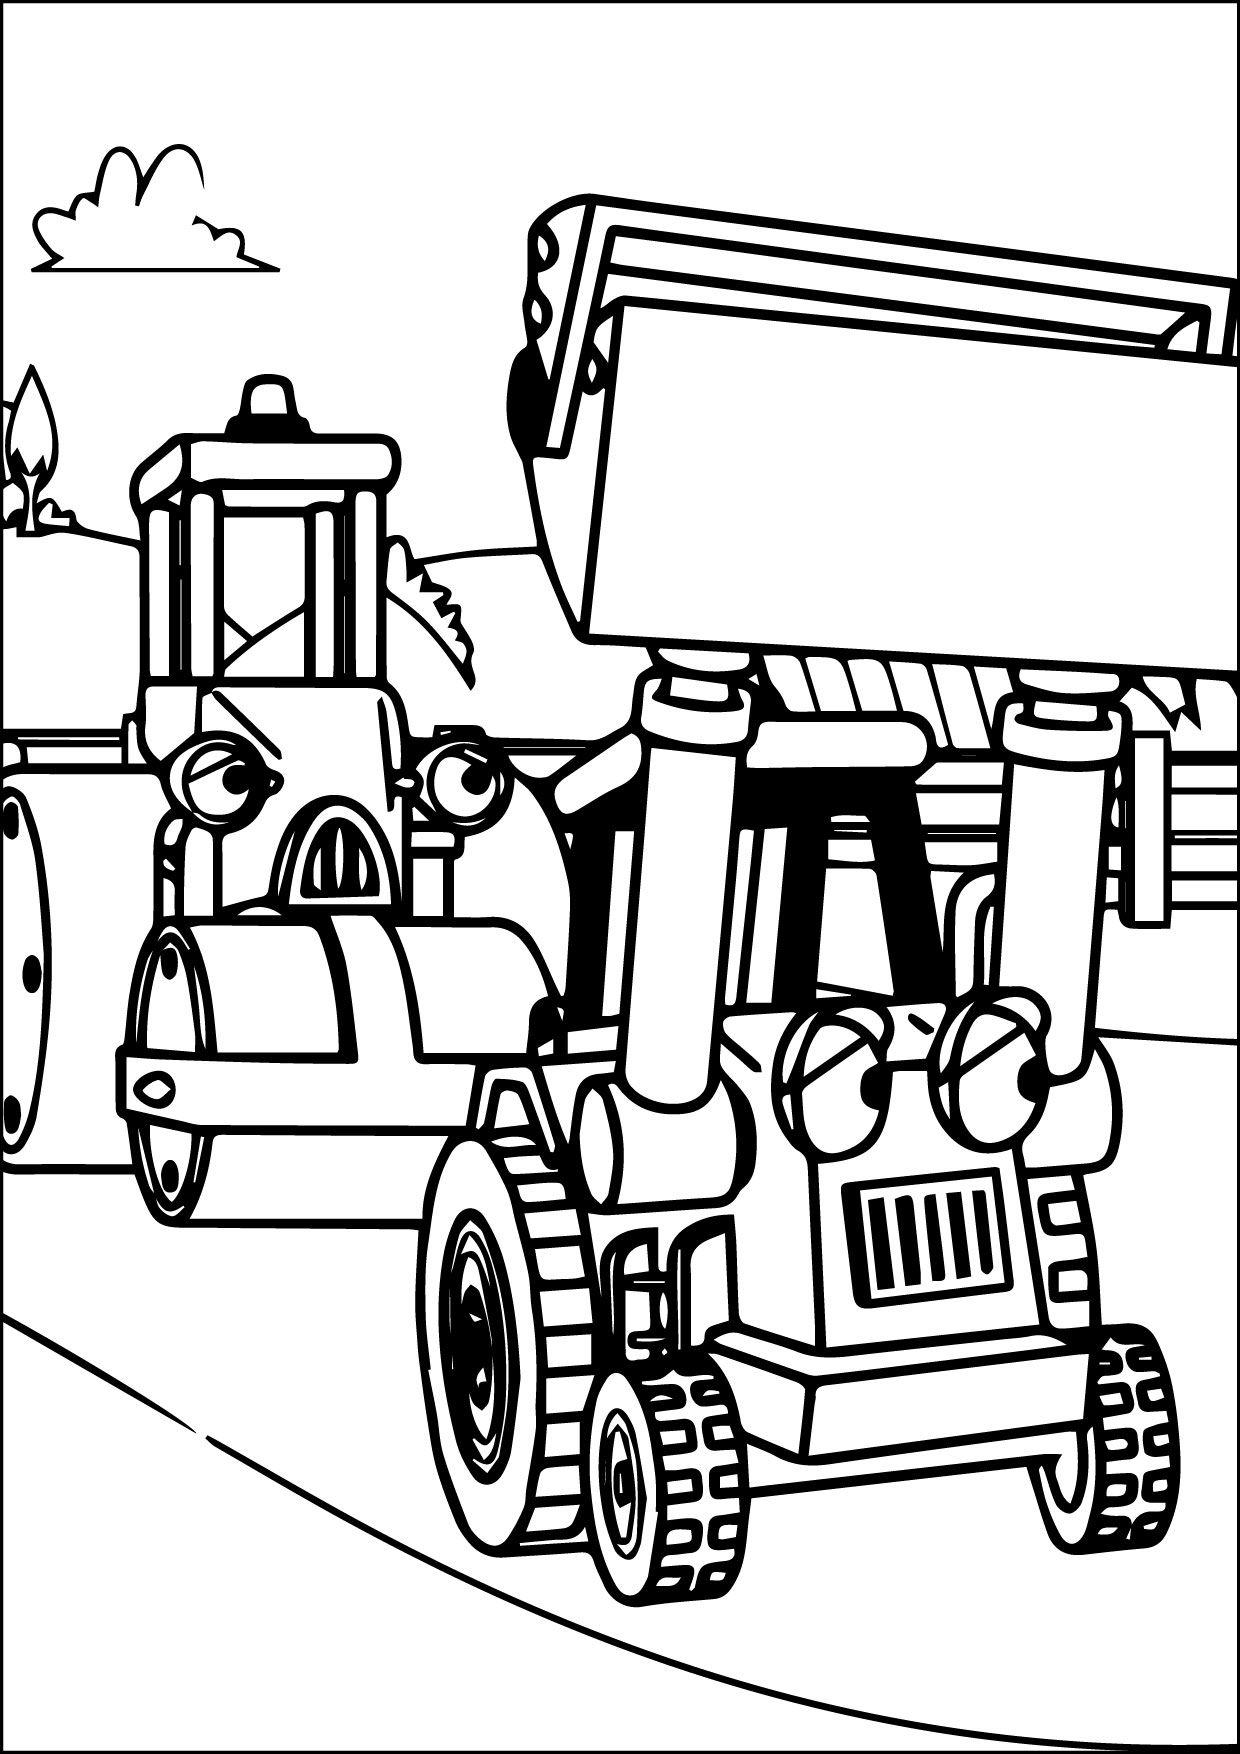 awesome Sami fireman coloring pages 07-09-2015_074843 Check more at ...